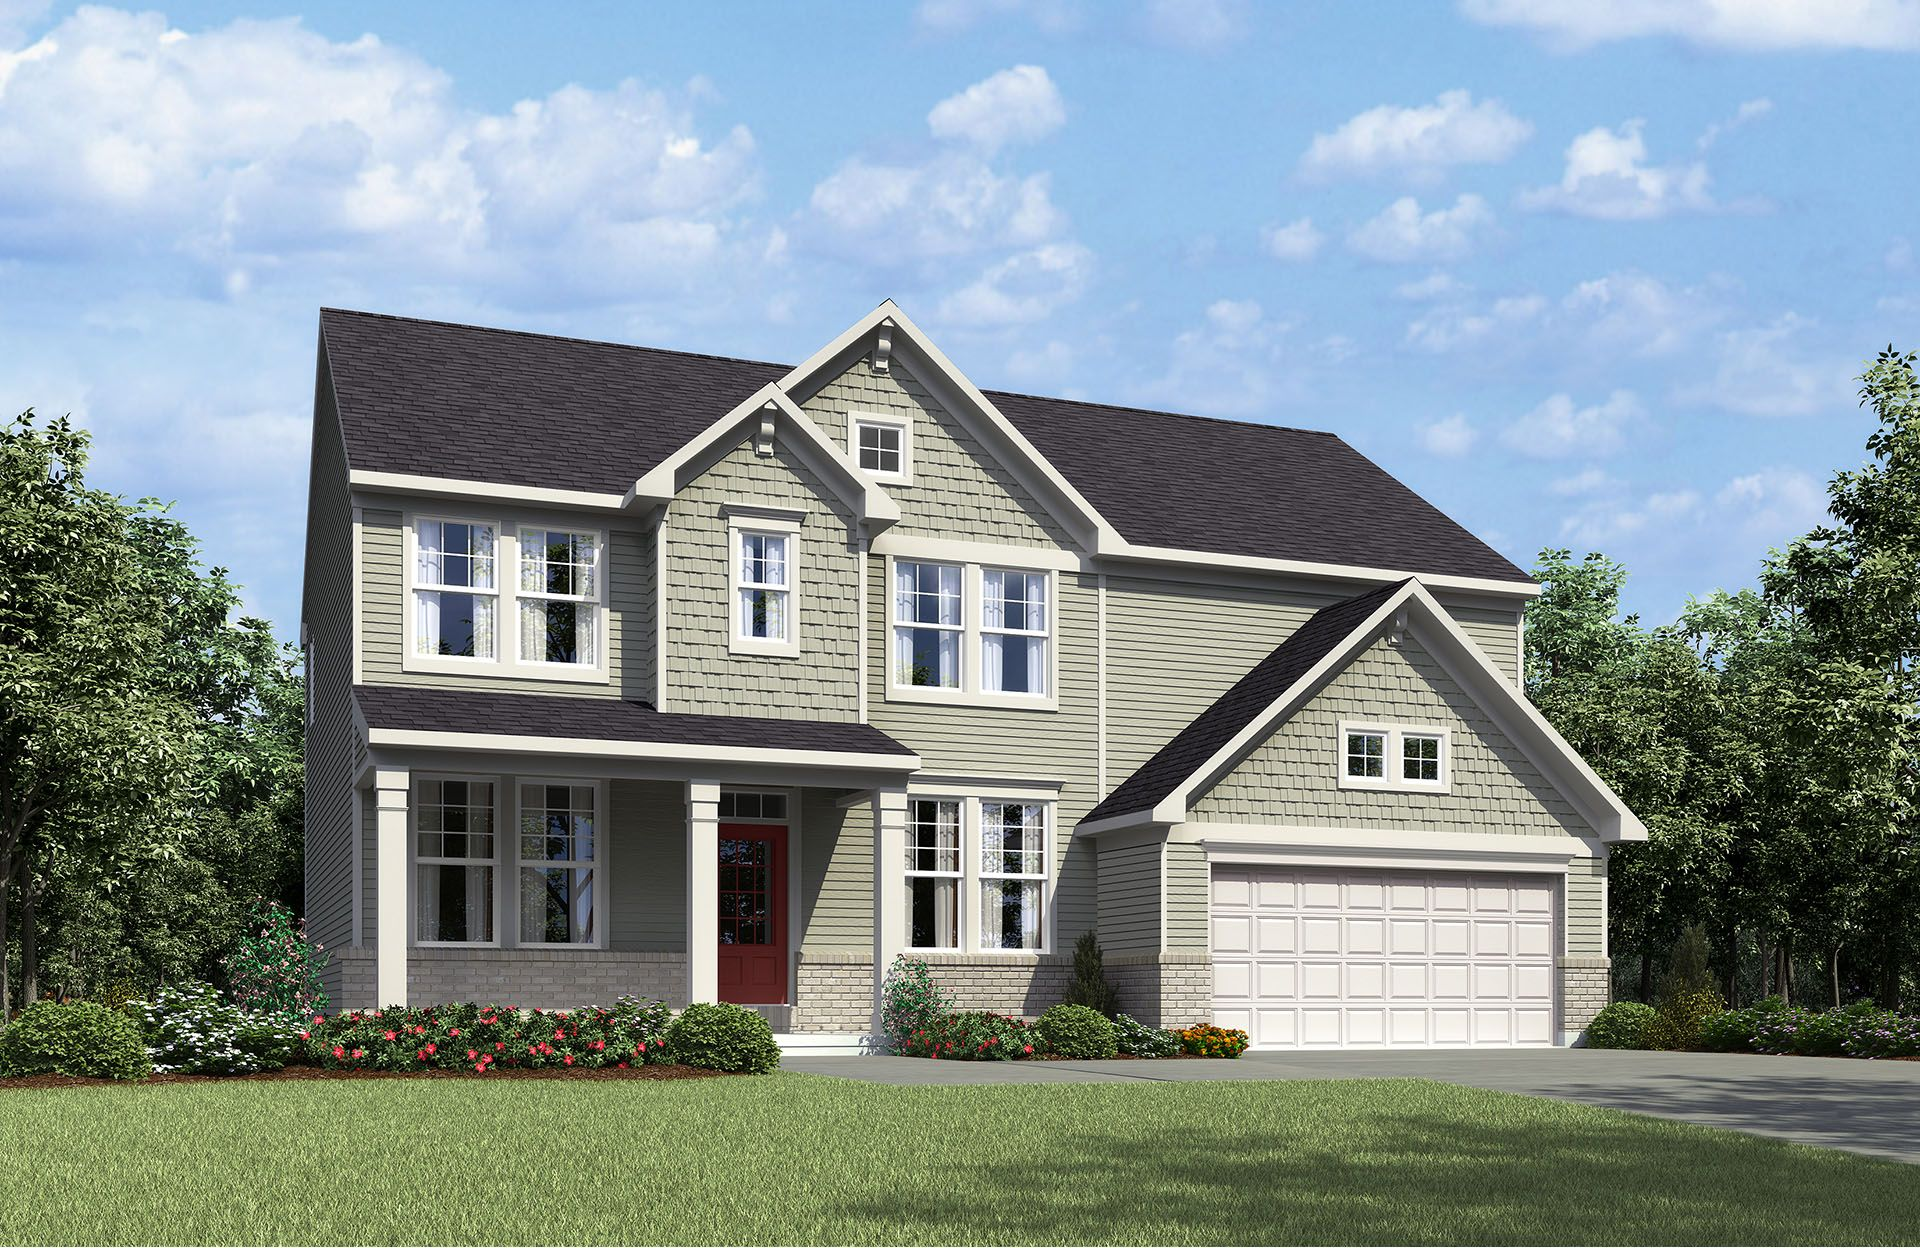 Single Family for Active at Quentin 23 Iron Master Drive Stafford, Virginia 22554 United States